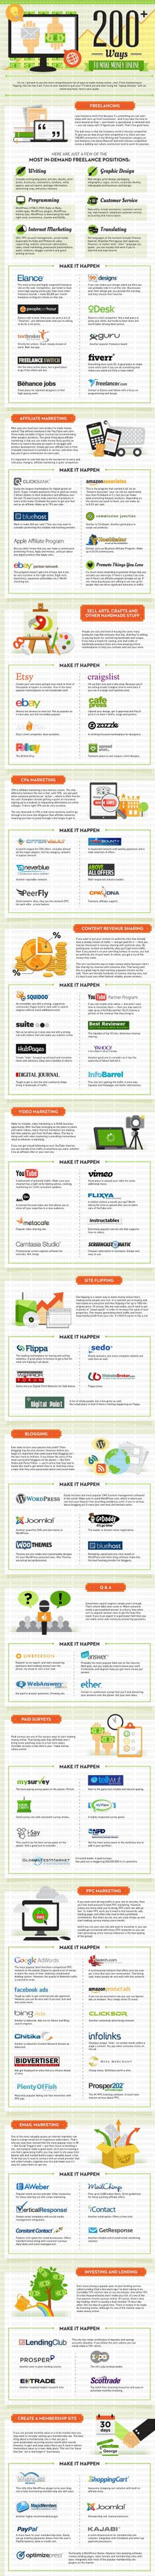 Over 200 ways to make money online: from blogging to affiliate marketing — all of the usual suspects. Sure, there may be a couple of errors in the infograph but the author's knowledge on the subject matter more than makes up for it.